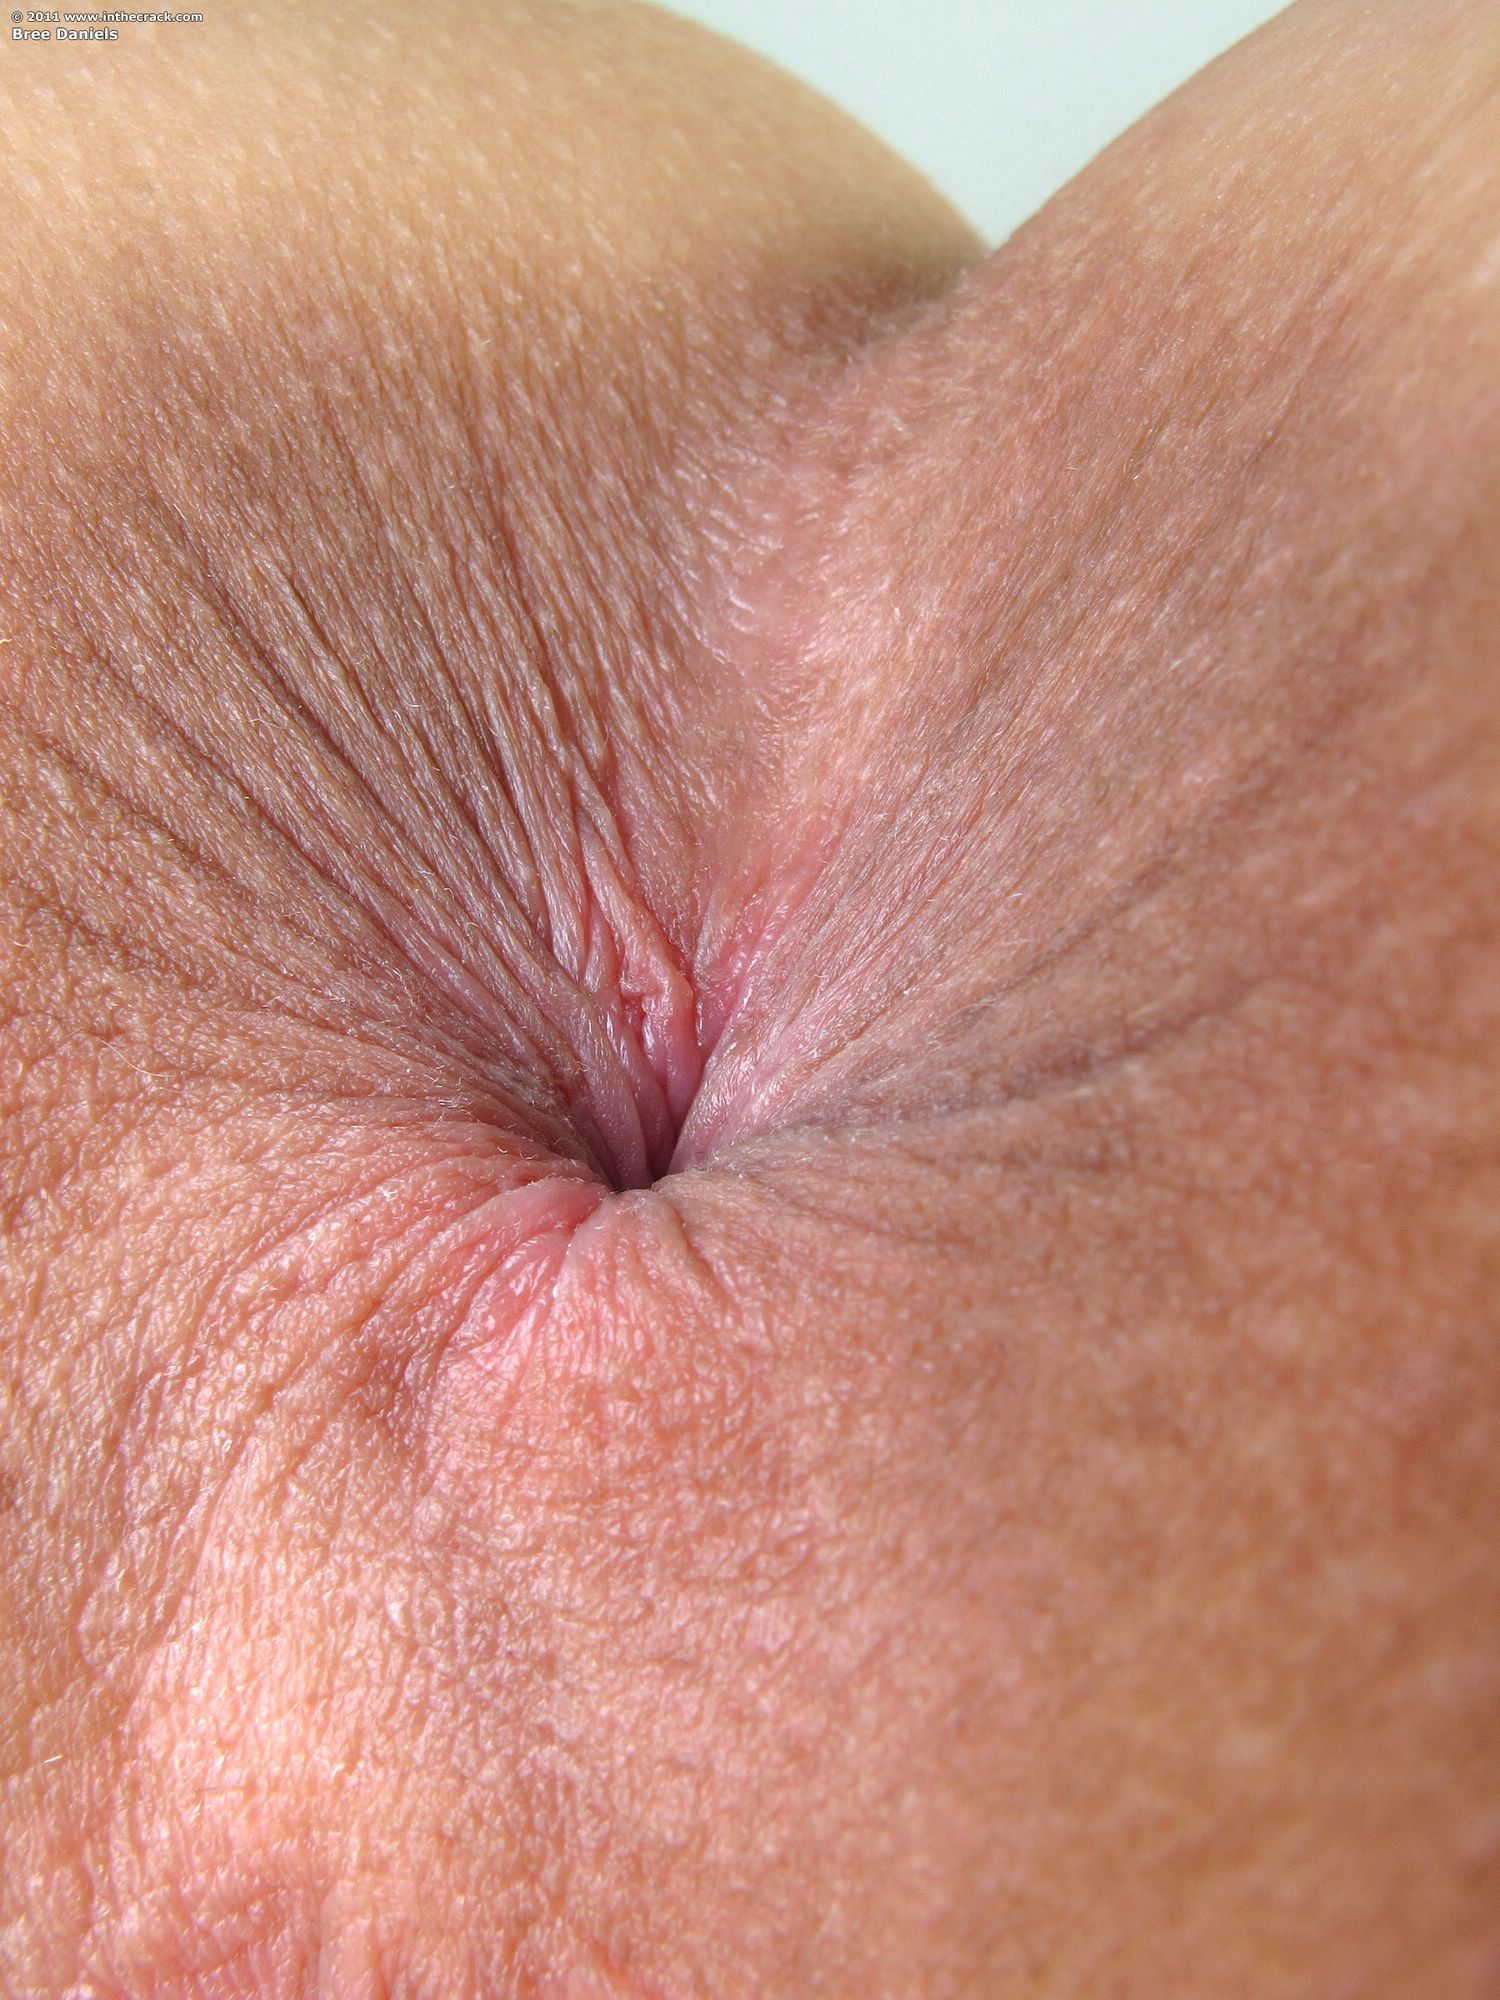 sexy womans vagina up close naked